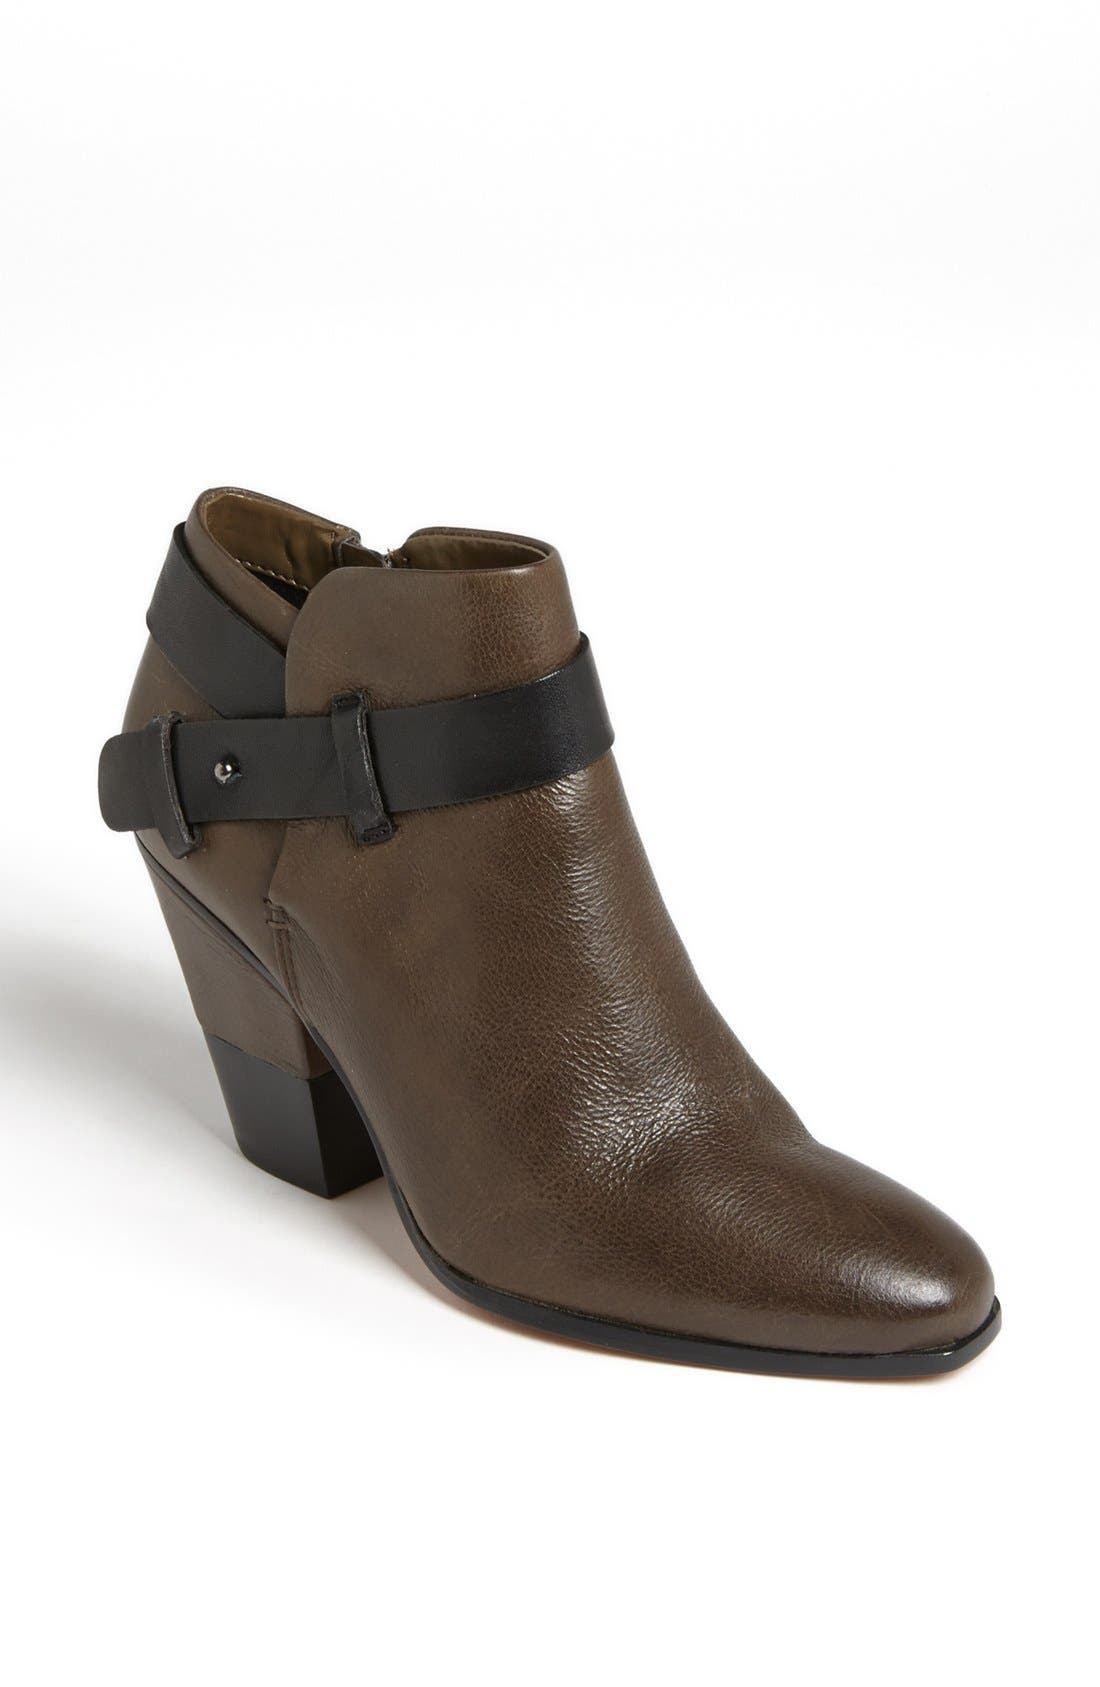 Alternate Image 1 Selected - Dolce Vita 'Hilary' Bootie